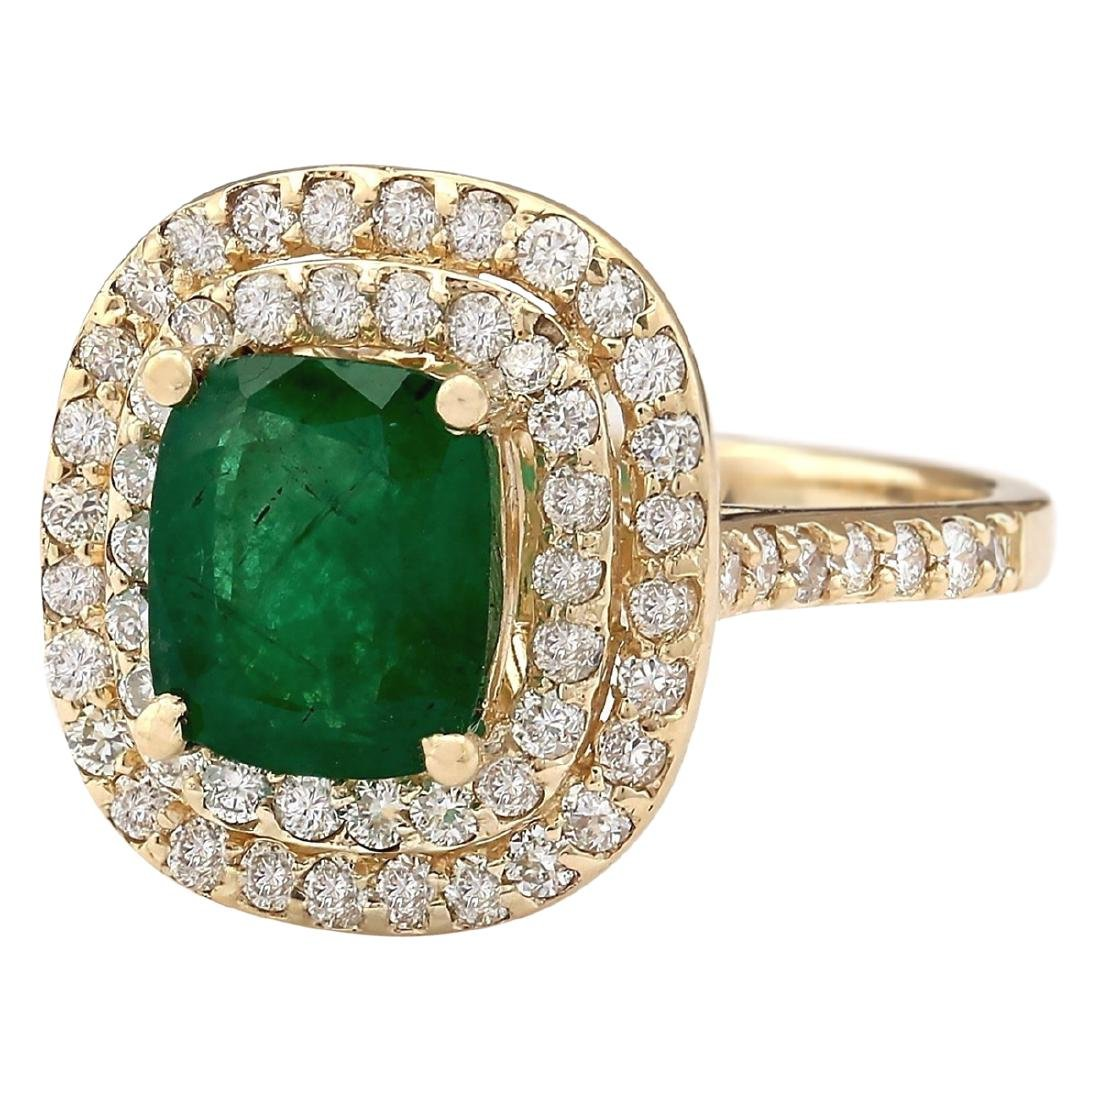 2.88 CTW Natural Emerald And Diamond Ring In 18K Yellow - 2